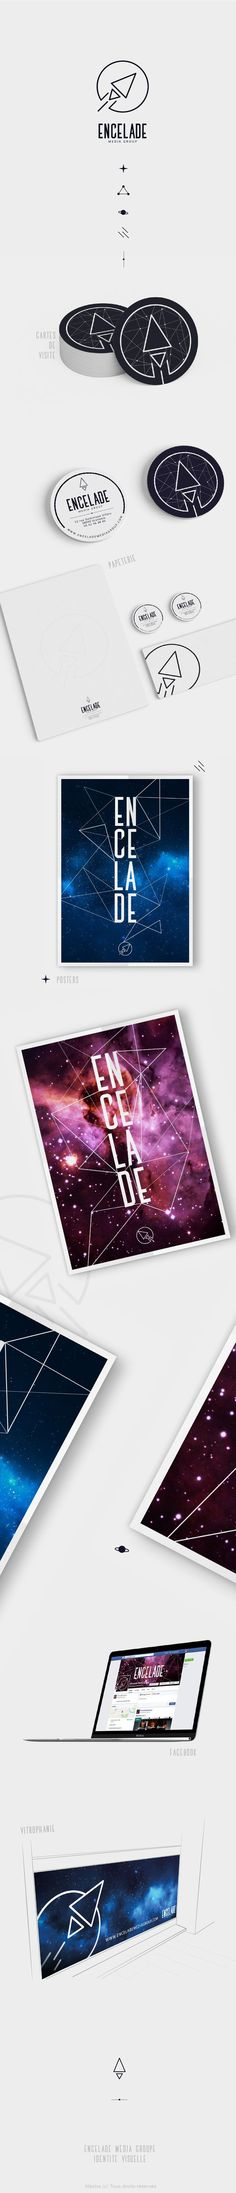 Encelade Media Group | Alextra Visual Identity - Graphisme - Designer - Design - Infographie - identité visuelle - Logo - Logotype - Galaxy - Planète - Cosmos - Fusée Ultimate Graphics Designs is your one stop shop for all your Graphics And Video Solutions!